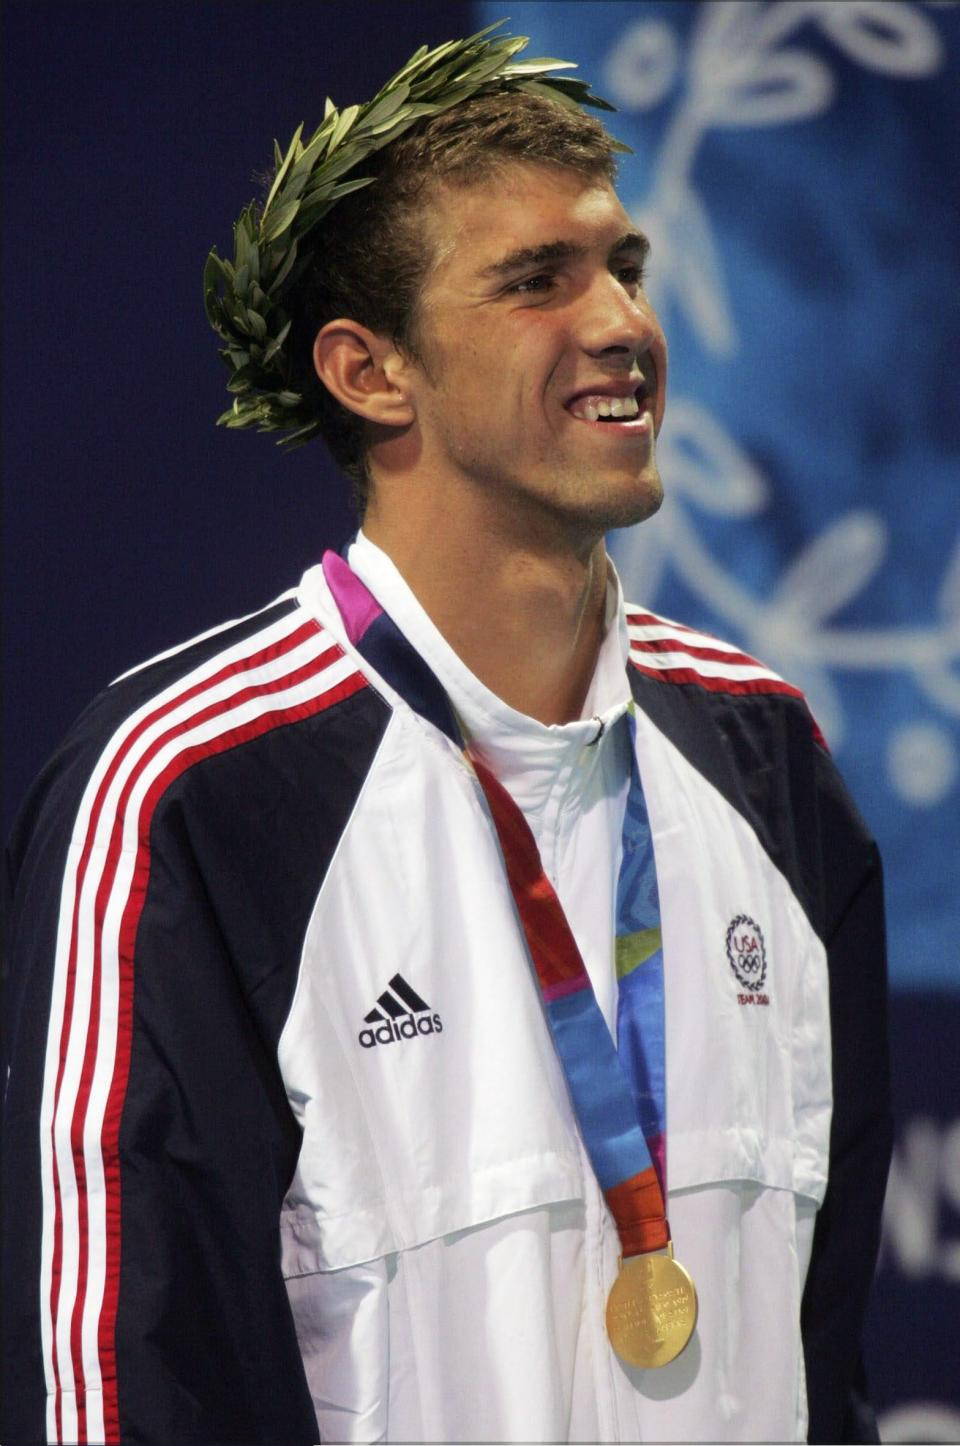 <b>Medal No. 6</b><br>Michael Phelps set an Olympic record with a time of 1:57.14 to win gold in the 200m IM in Athens.